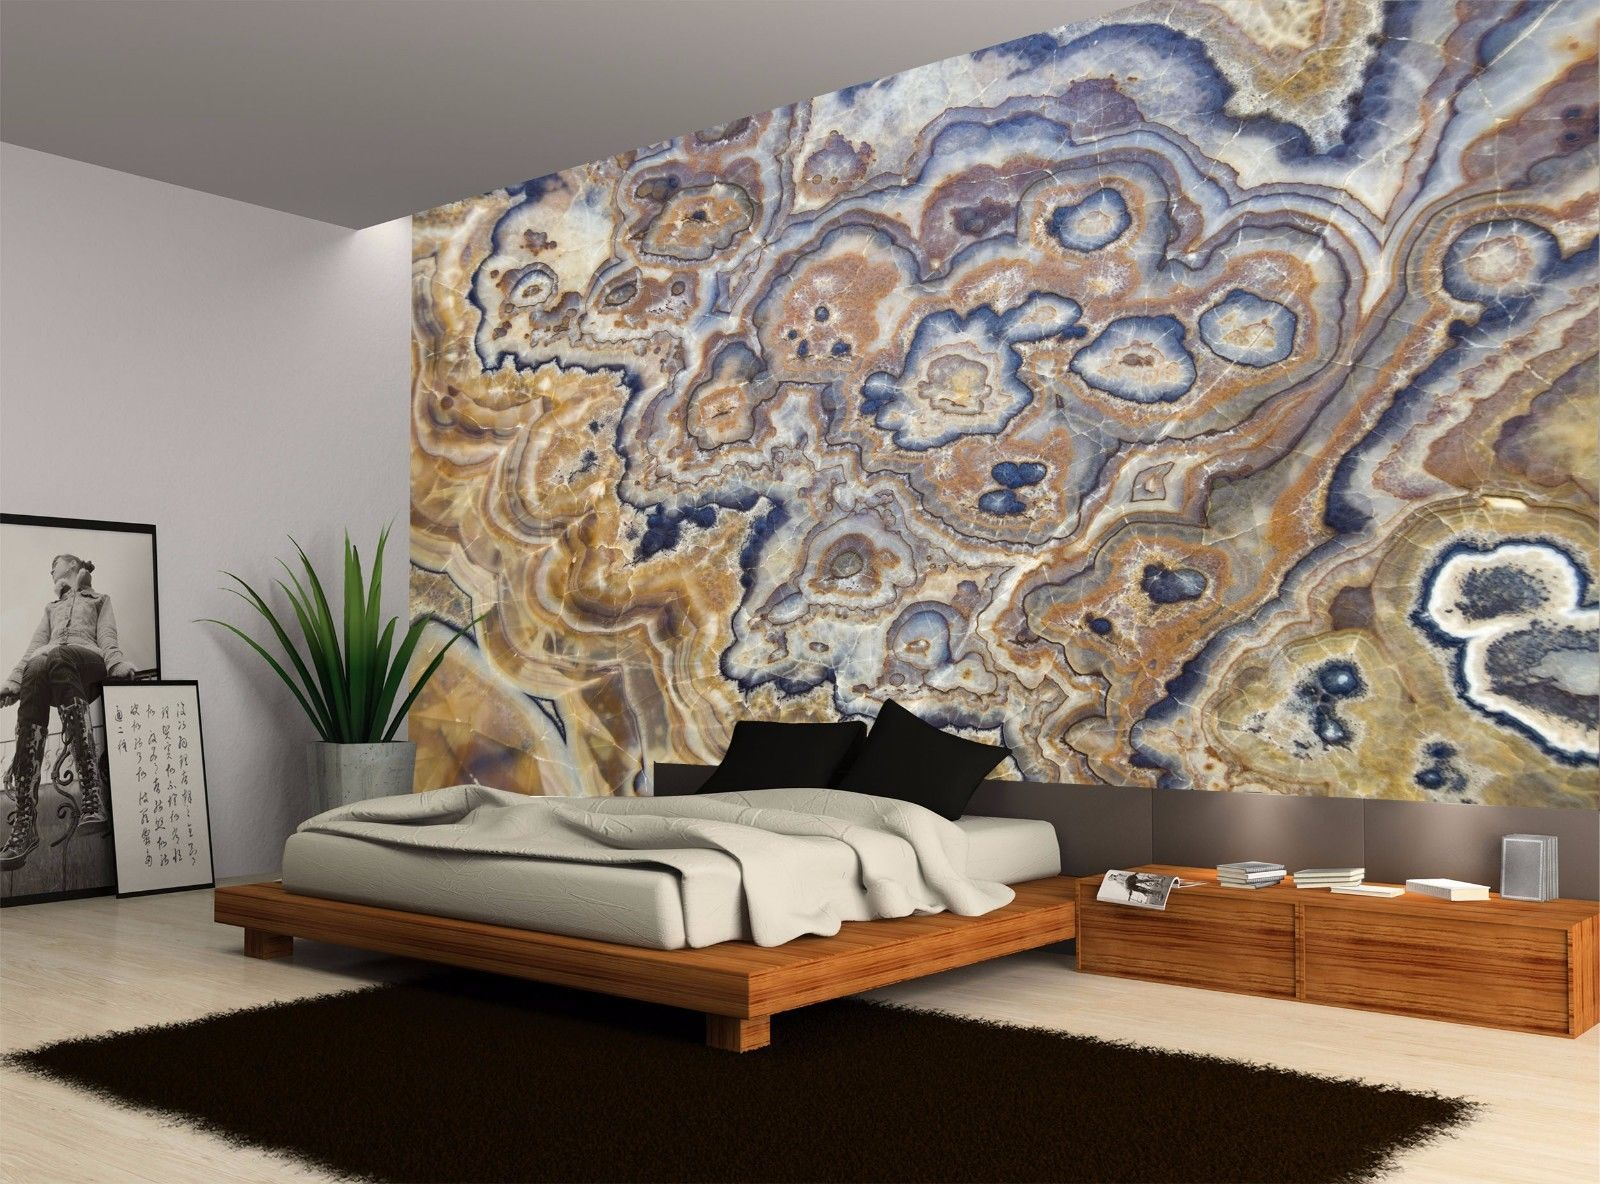 Details about Onyx Texture Stone Amazing Wall Mural Photo